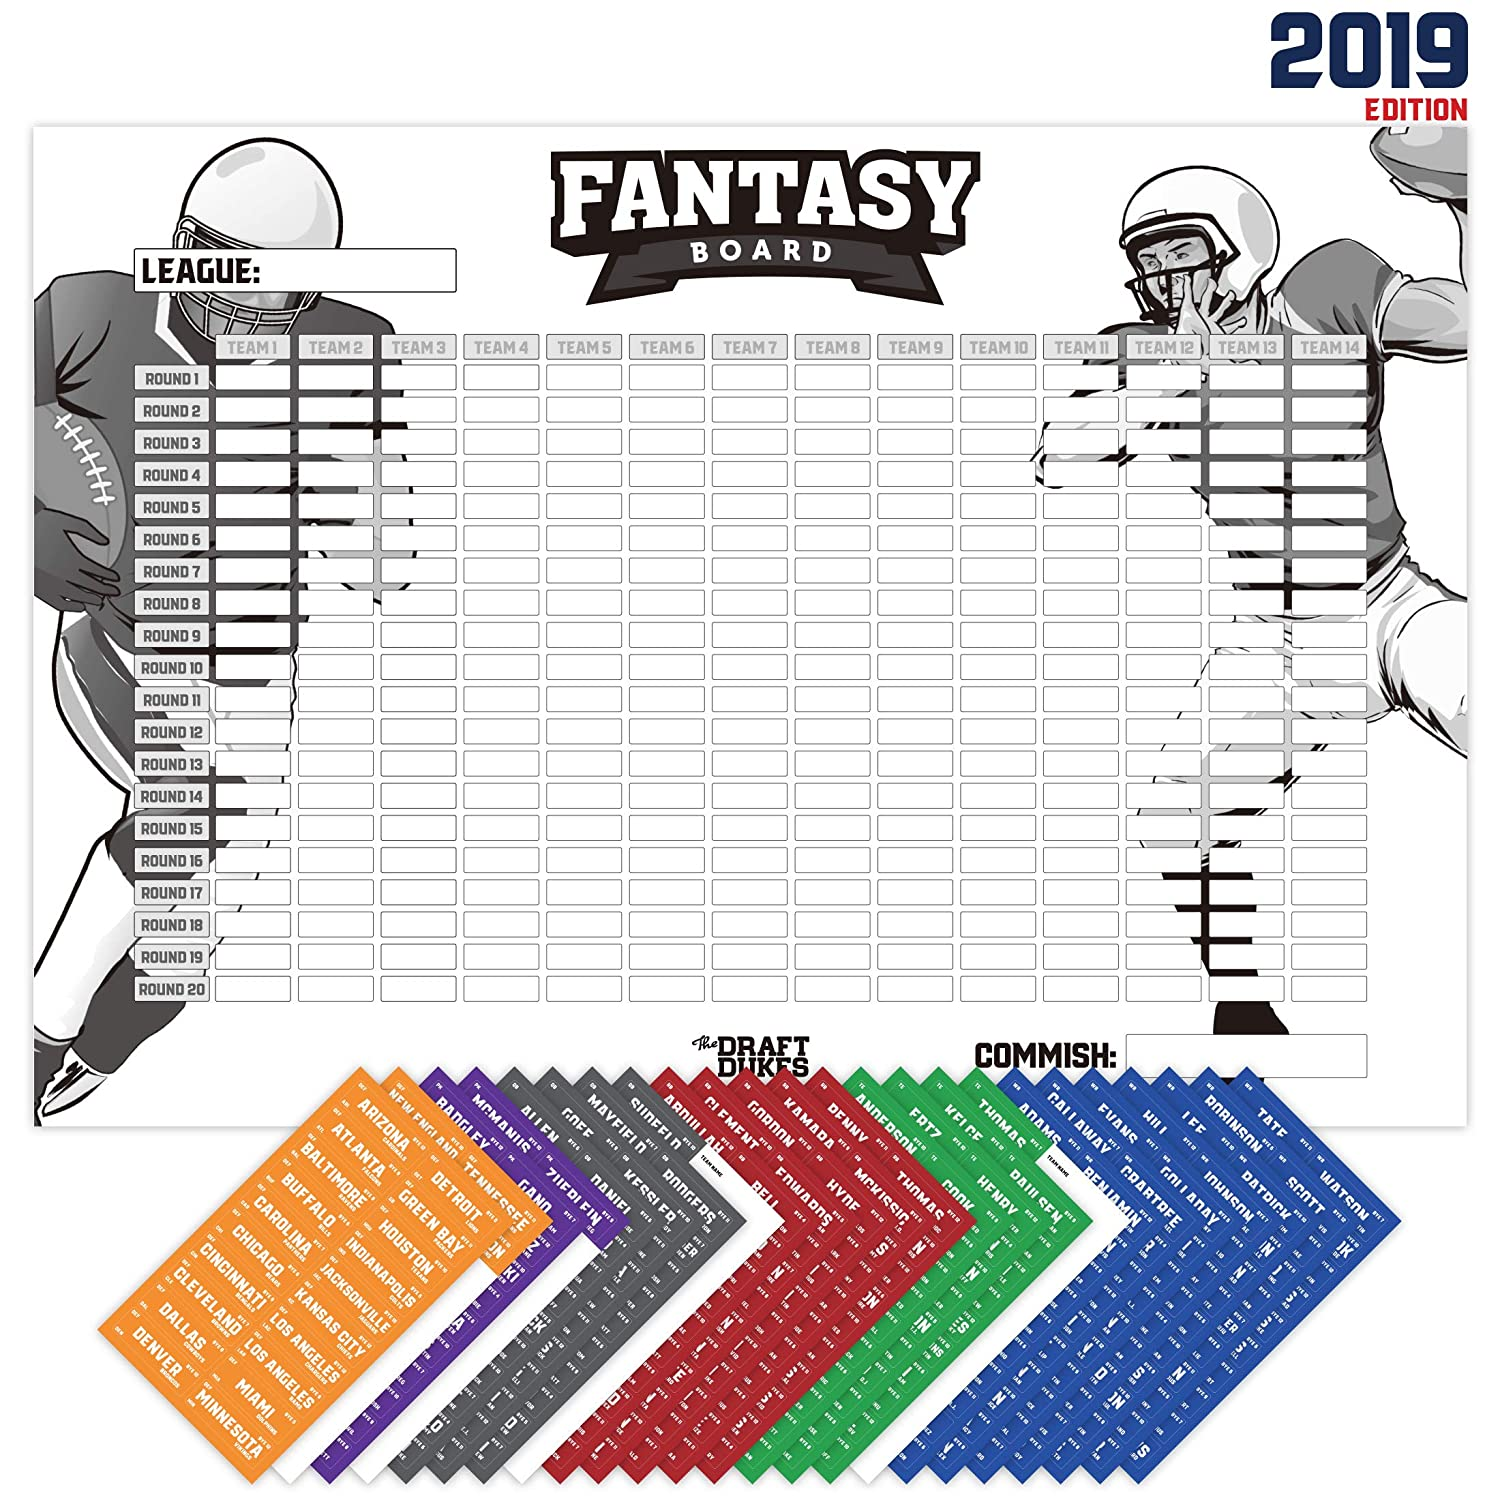 Fantasy Football Draft List 2020.Joyousa Fantasy Football Draft Board 2019 Kit With Player Labels Extra Large 14 Teams And 480 Name Stickers